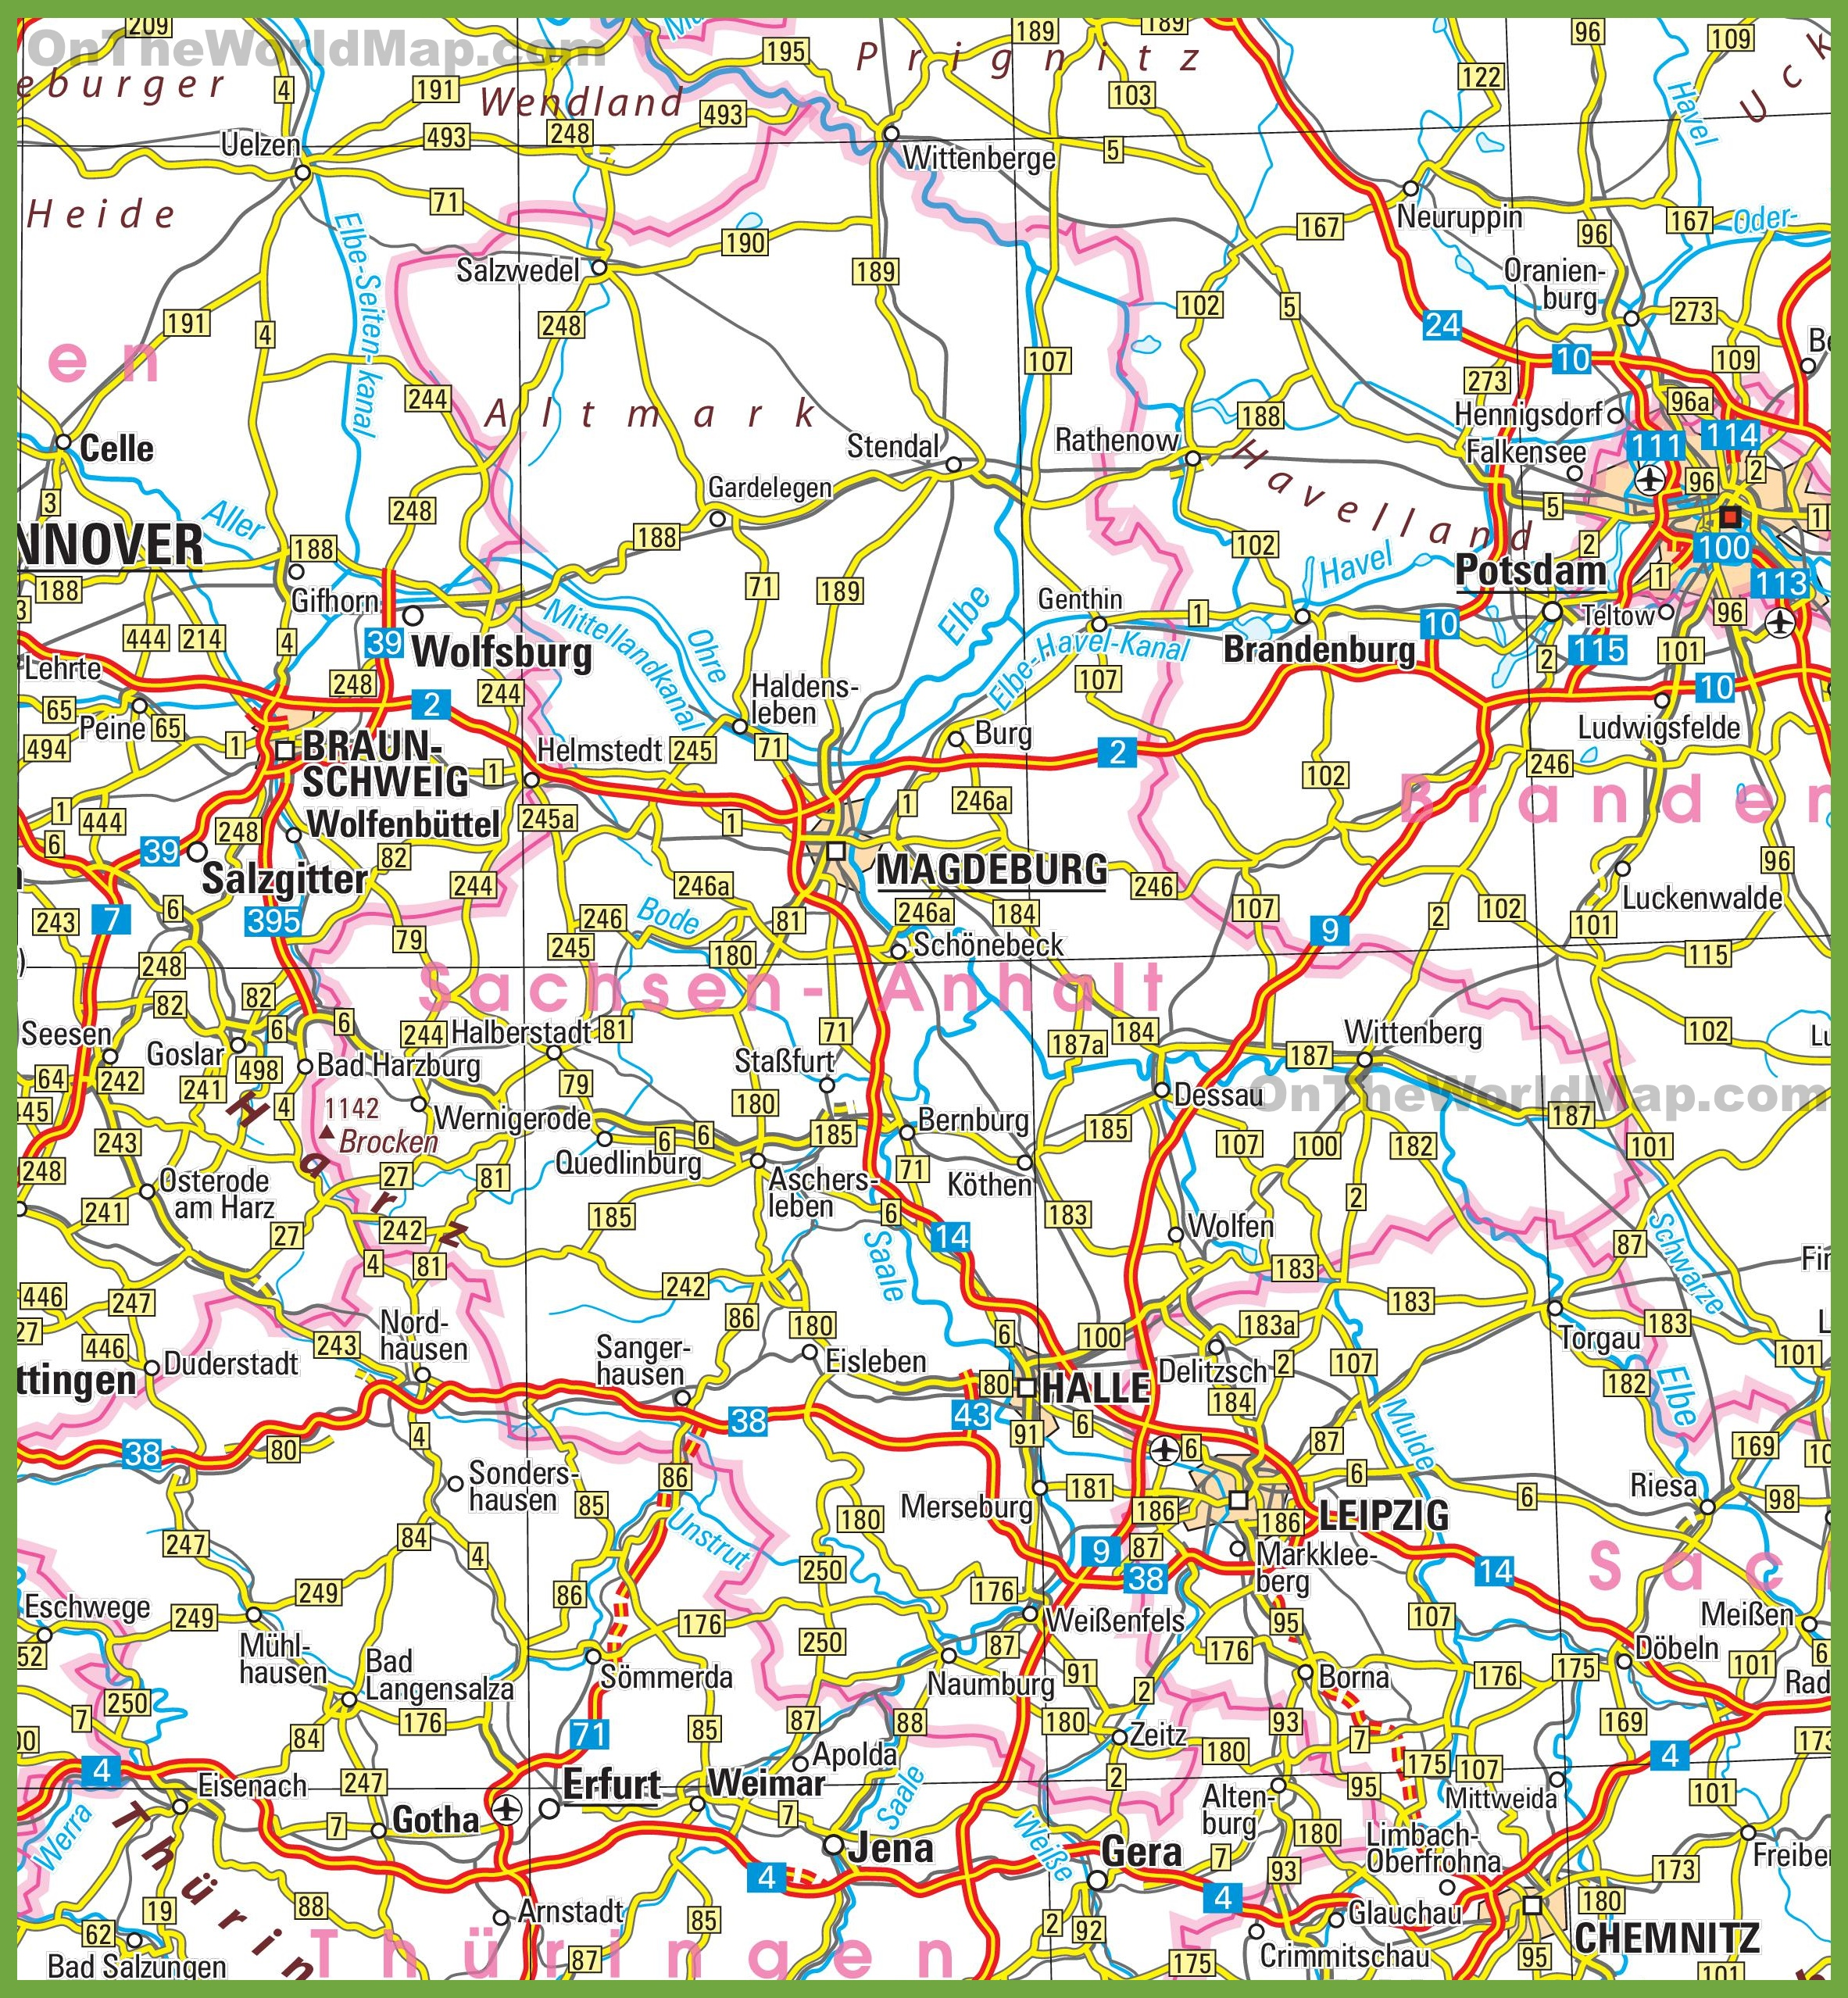 The Anger Saxony, Saxony-Anhalt and Thuringia, Saxony-Anhalt road map